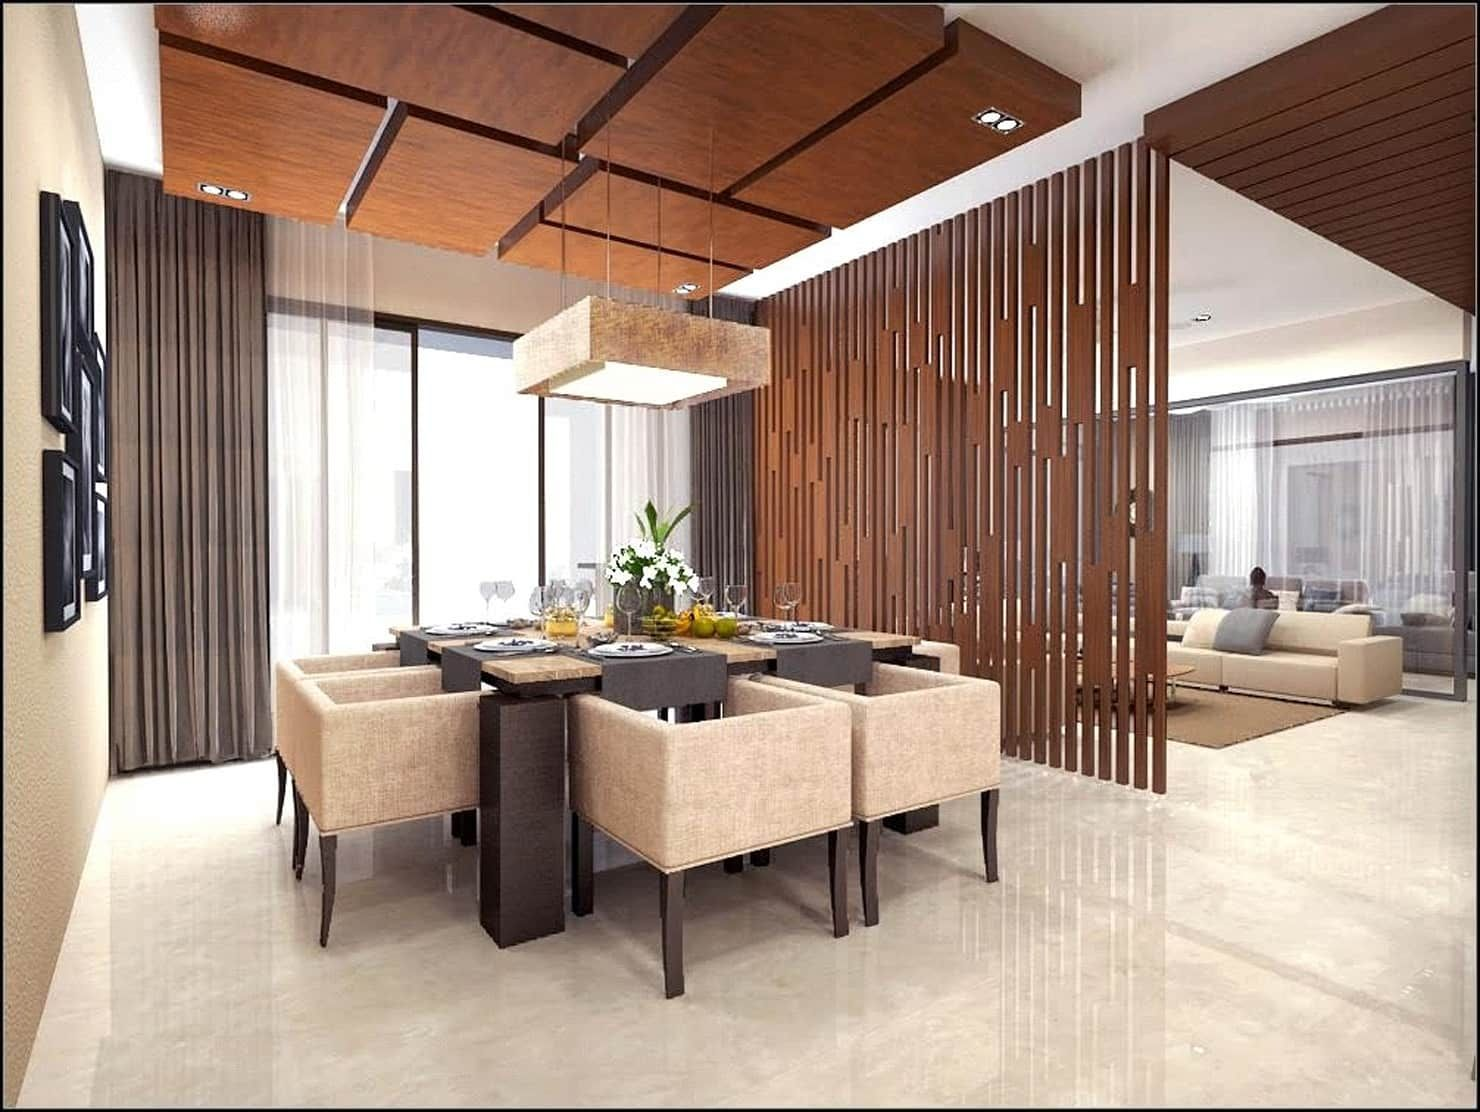 SHH Architects design the interiors of this luxury